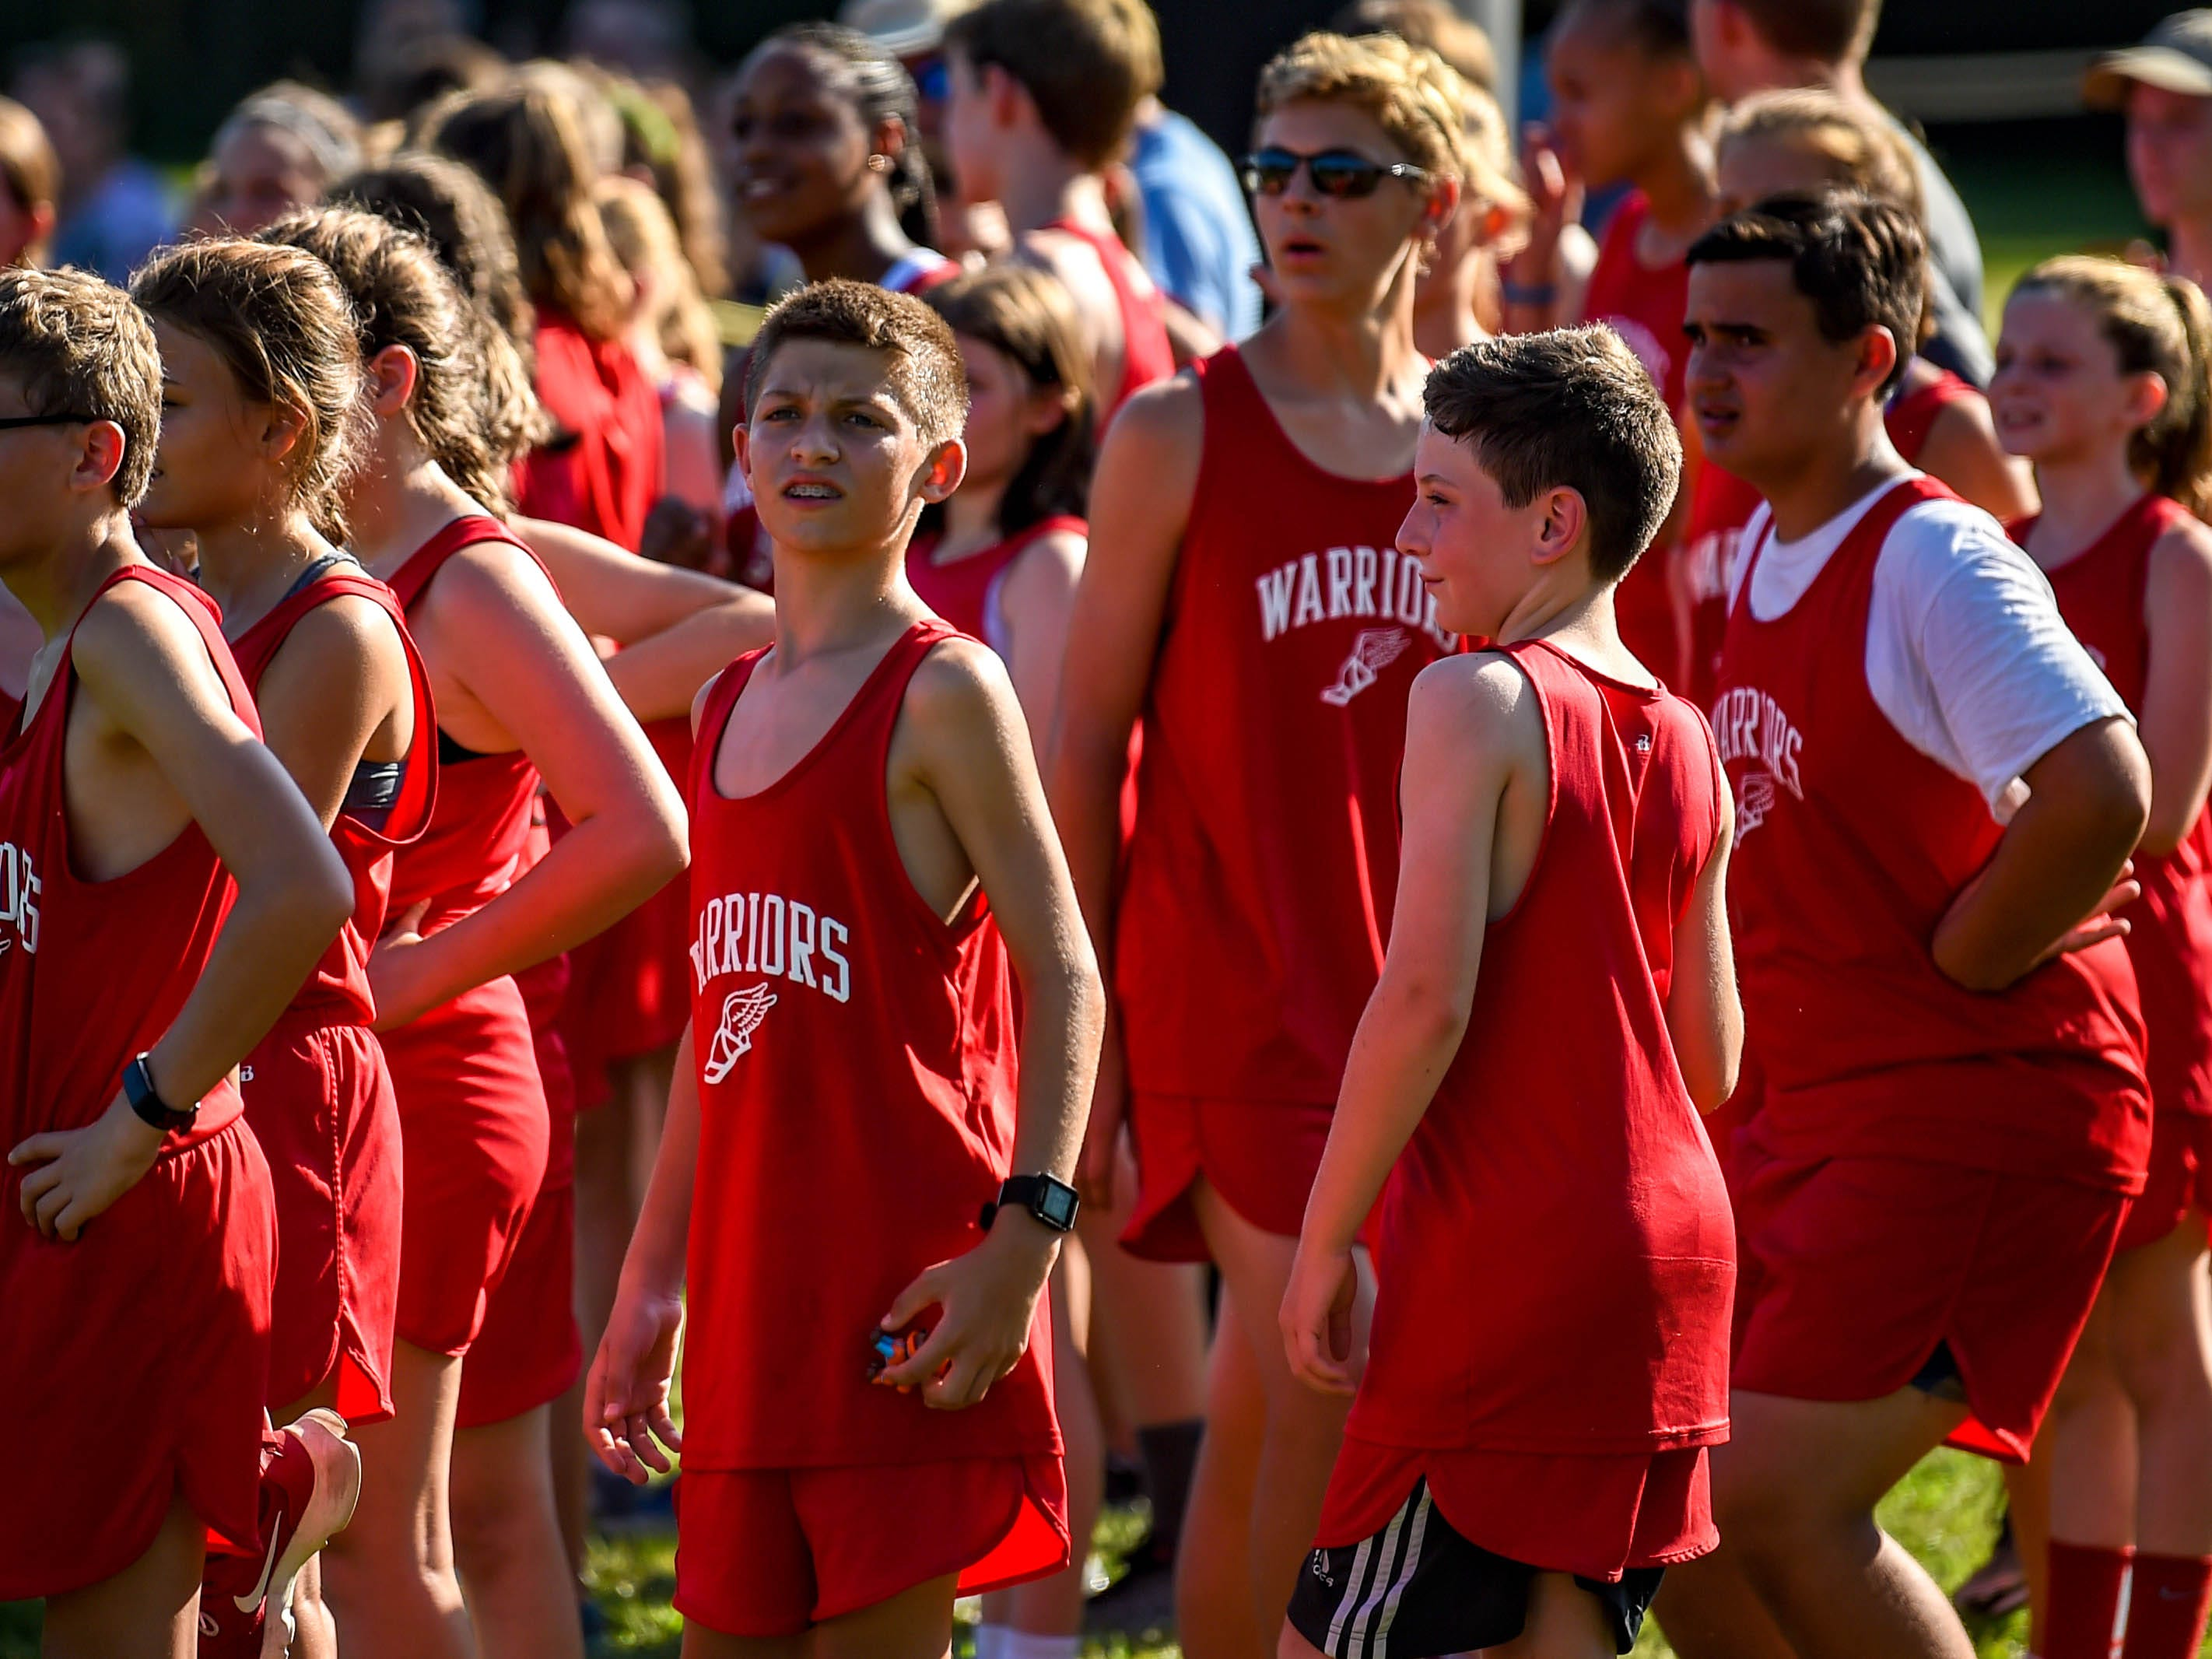 Susquehannock runners look for their teammates from the finish line during the Cross Country scrimmage at John Rudy County Park on August 30, 2018.